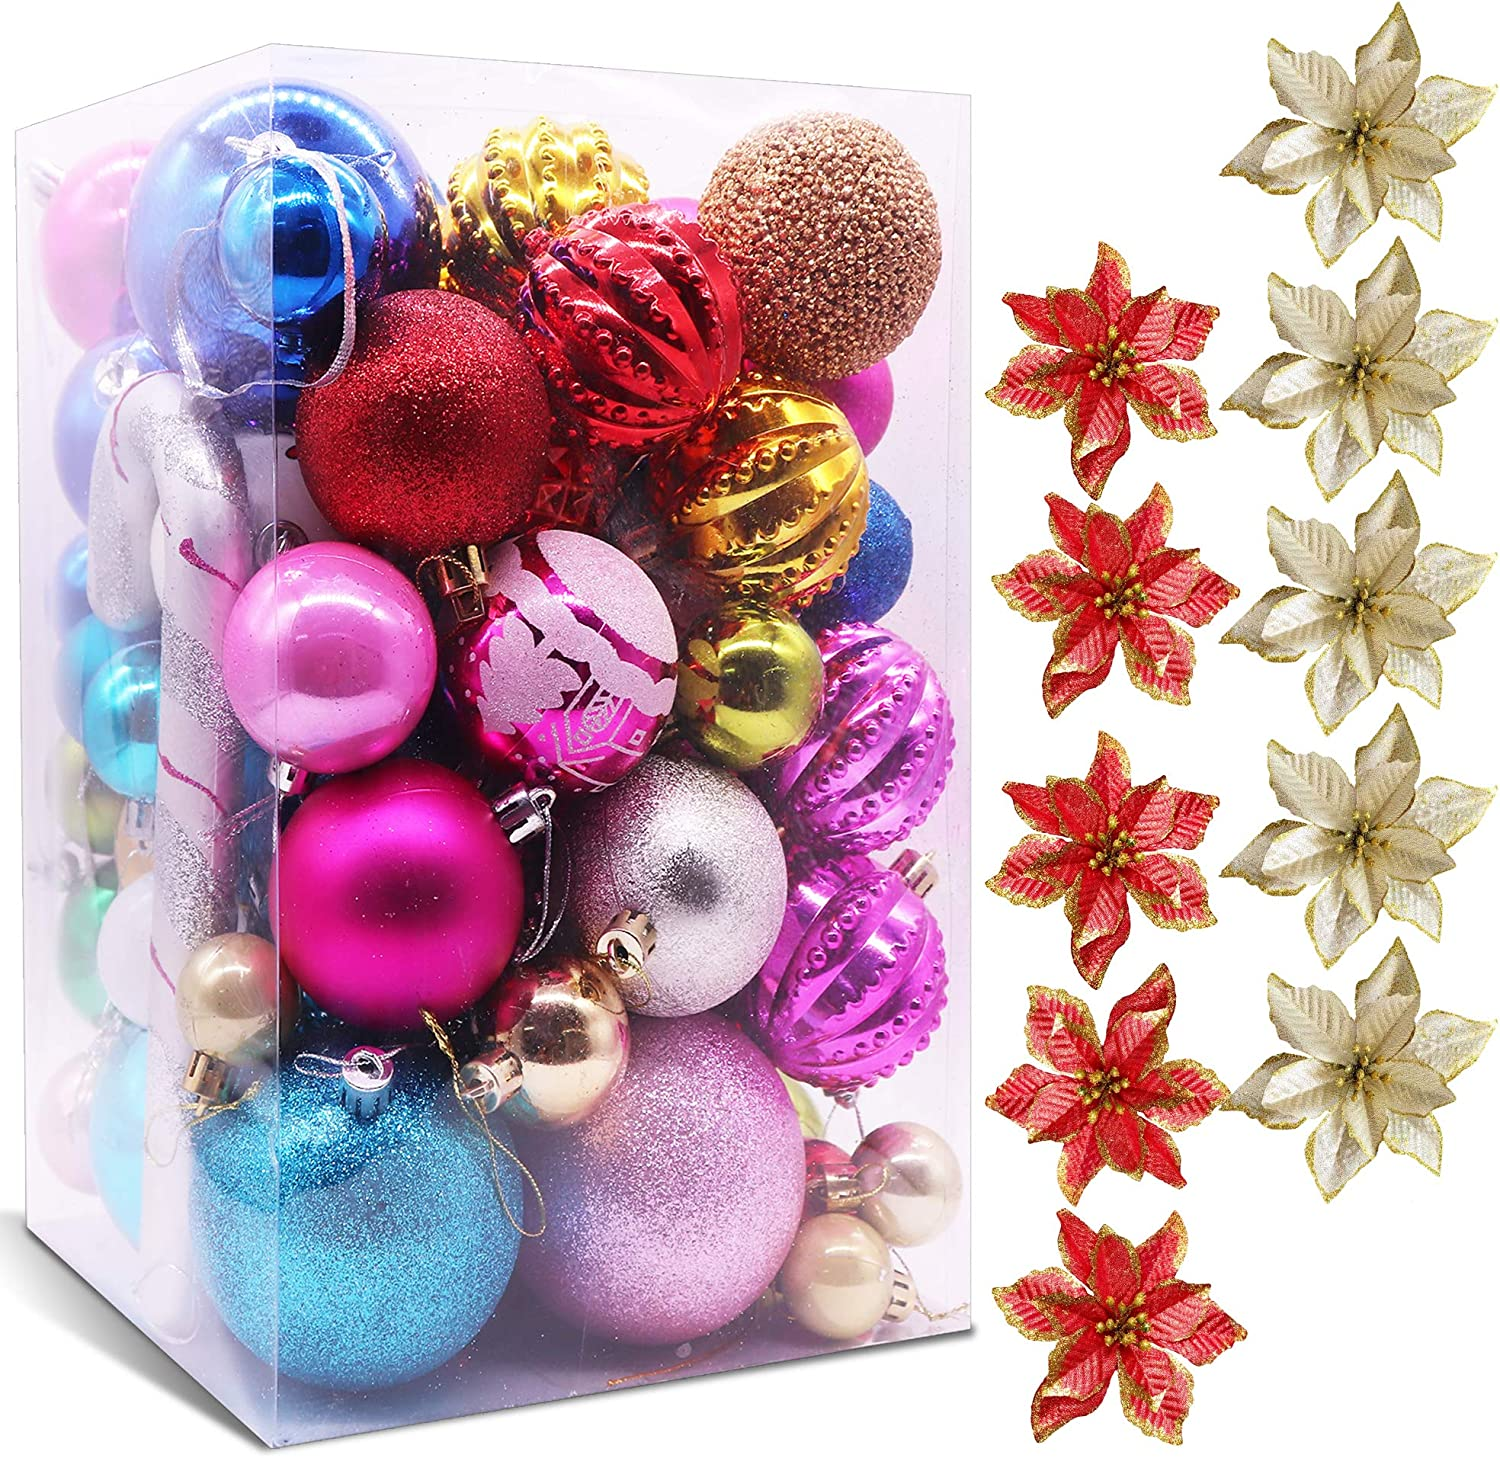 LEBOO Christmas Balls Ornaments 70-80Pack Assorted Shatterproof Christmas Tree Decorations Large Hanging Ball and 10-Pack Poinsettia Christmas Flowers for Xmas Trees Wedding Party Home Decor